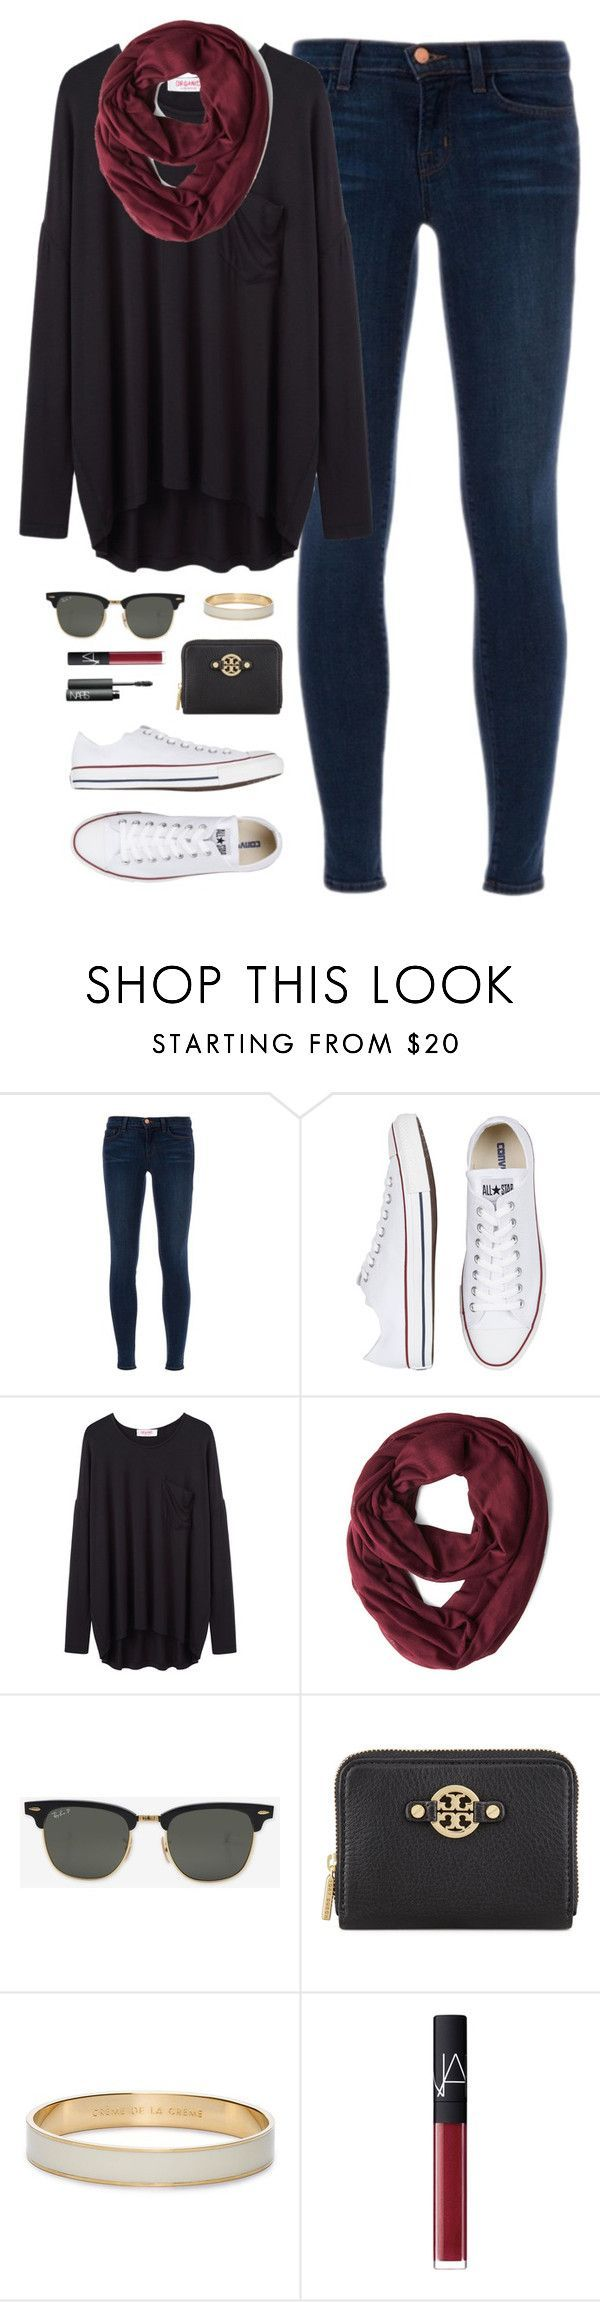 """cold day, dark clothes"" by classically-preppy ❤ liked on Polyvore featuring J Brand, Converse, Organic by John Patrick, Ray-Ban, Tory Burch, Kate Spade and NARS Cosmetics"